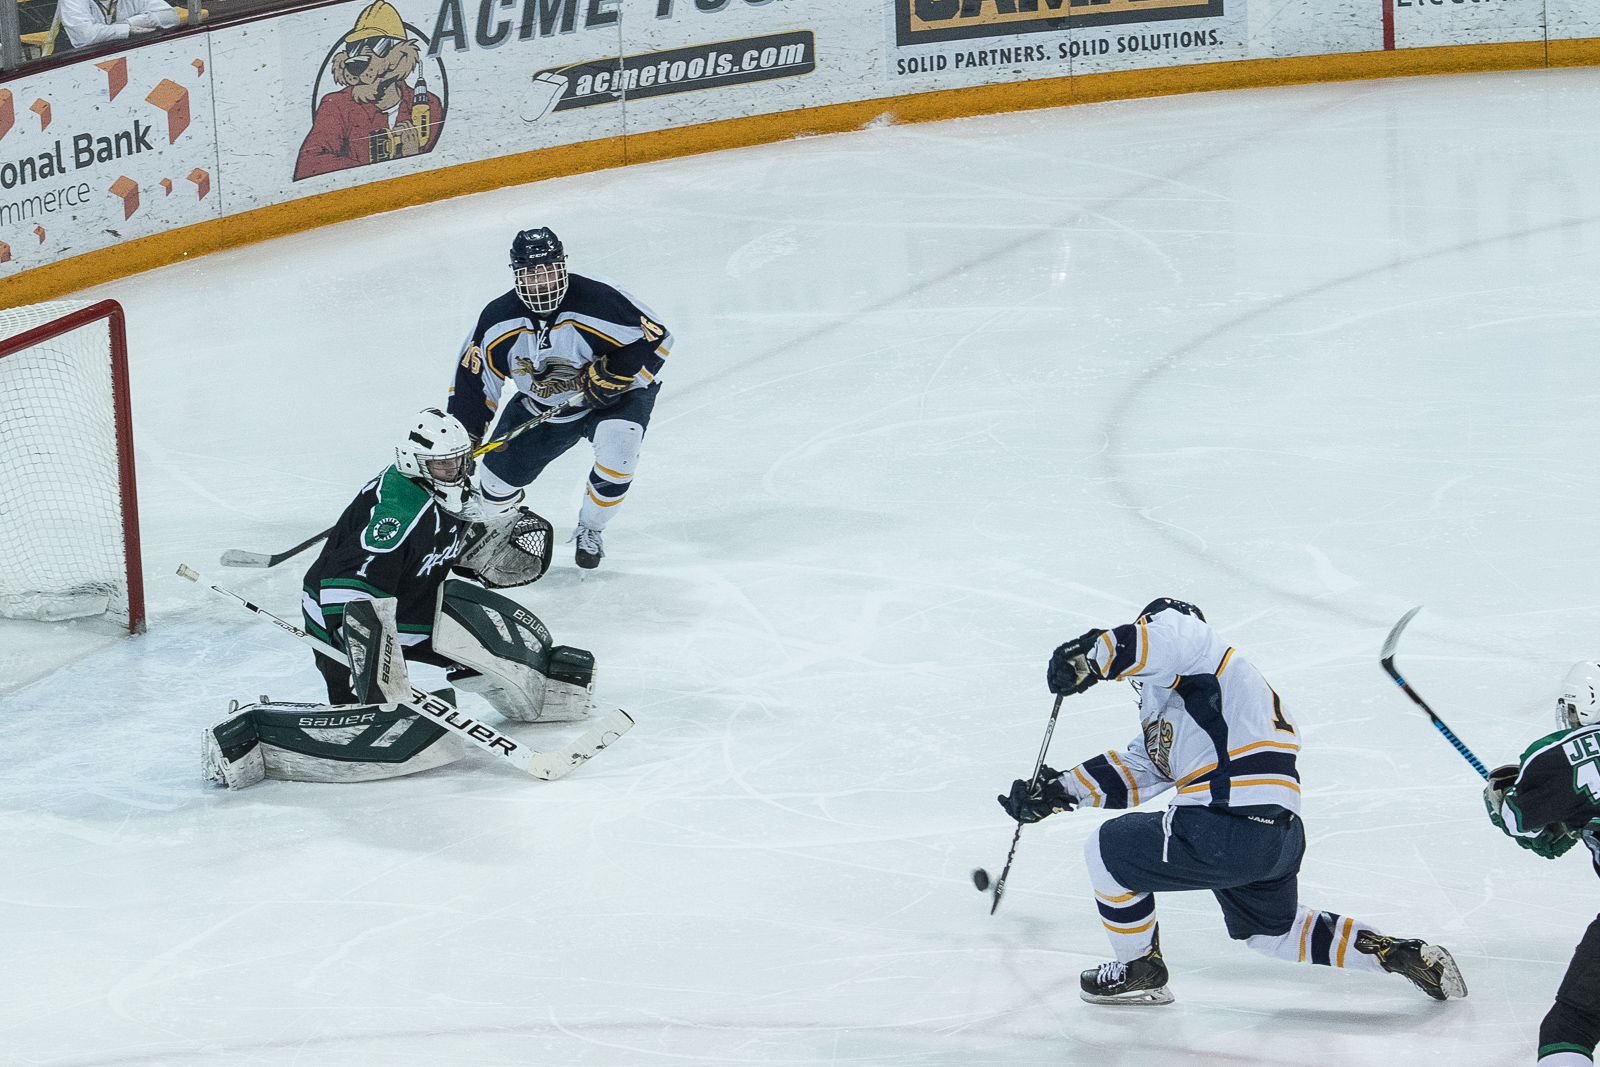 Hermantown's Tyler Watkins (18) with the goal to put Hermantown up 4-0 to start the 3rd period. Photo by Matthew Moses, SportsEngine